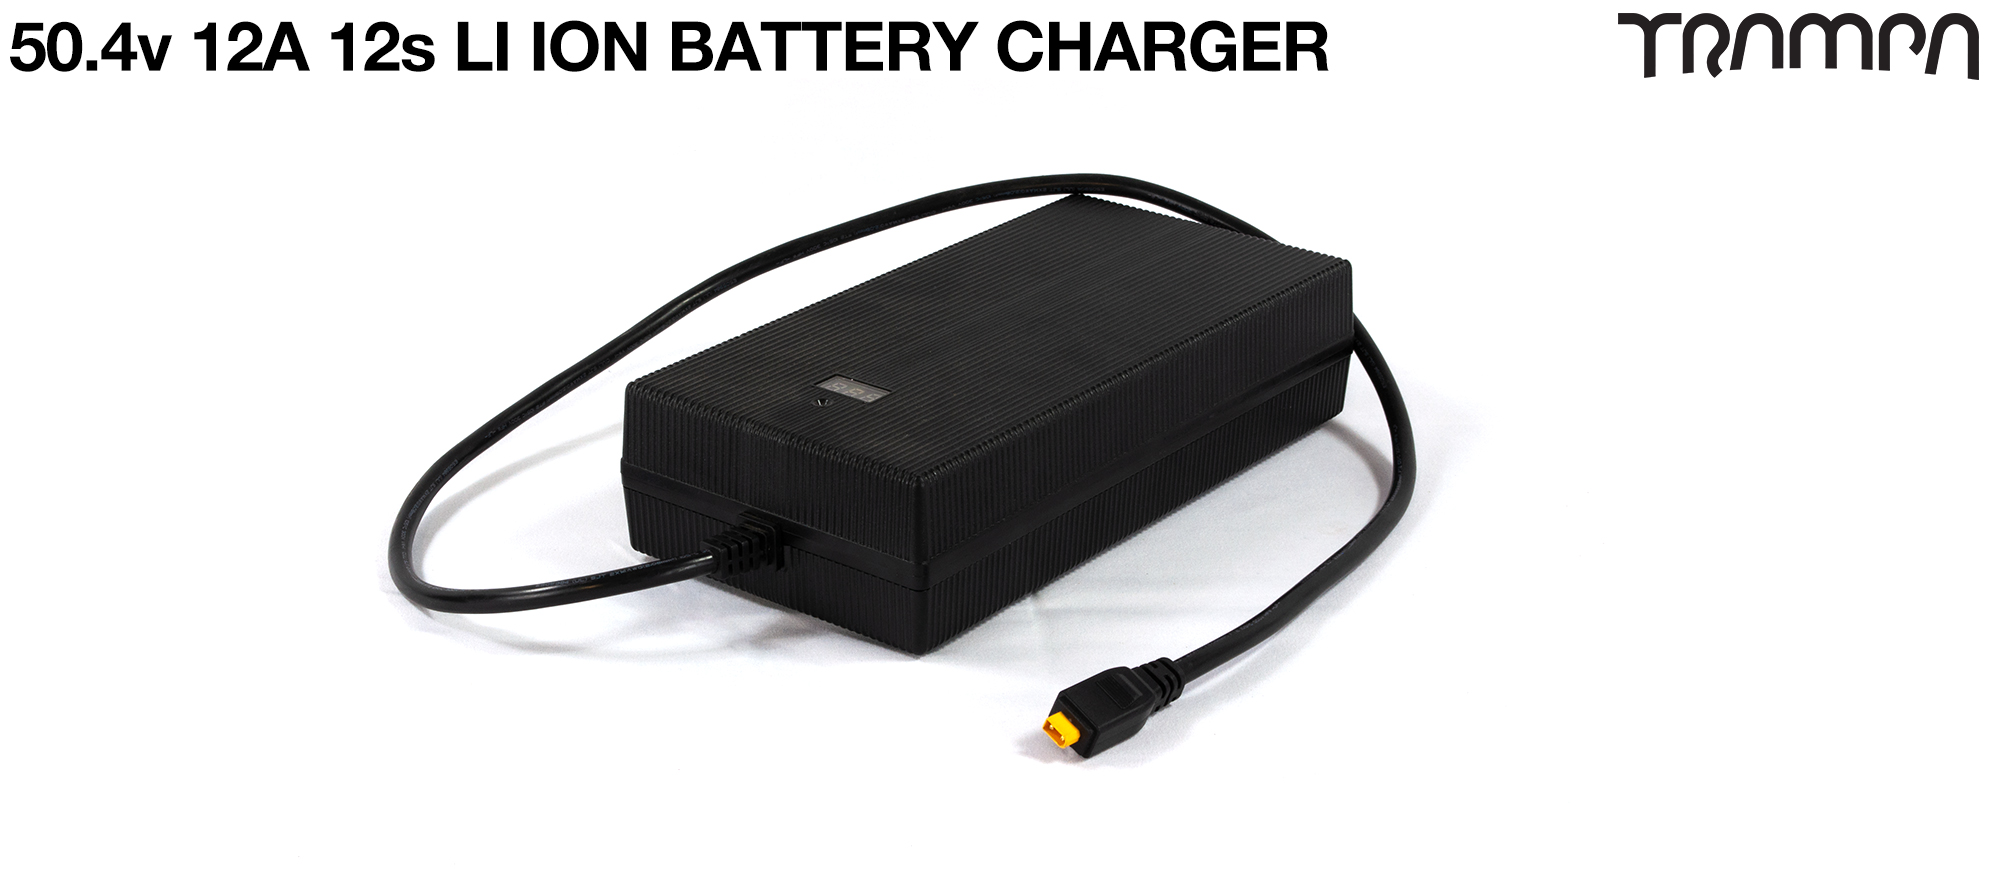 Yes please add a 12Ah Li-On Charger to my purchase (+£100)